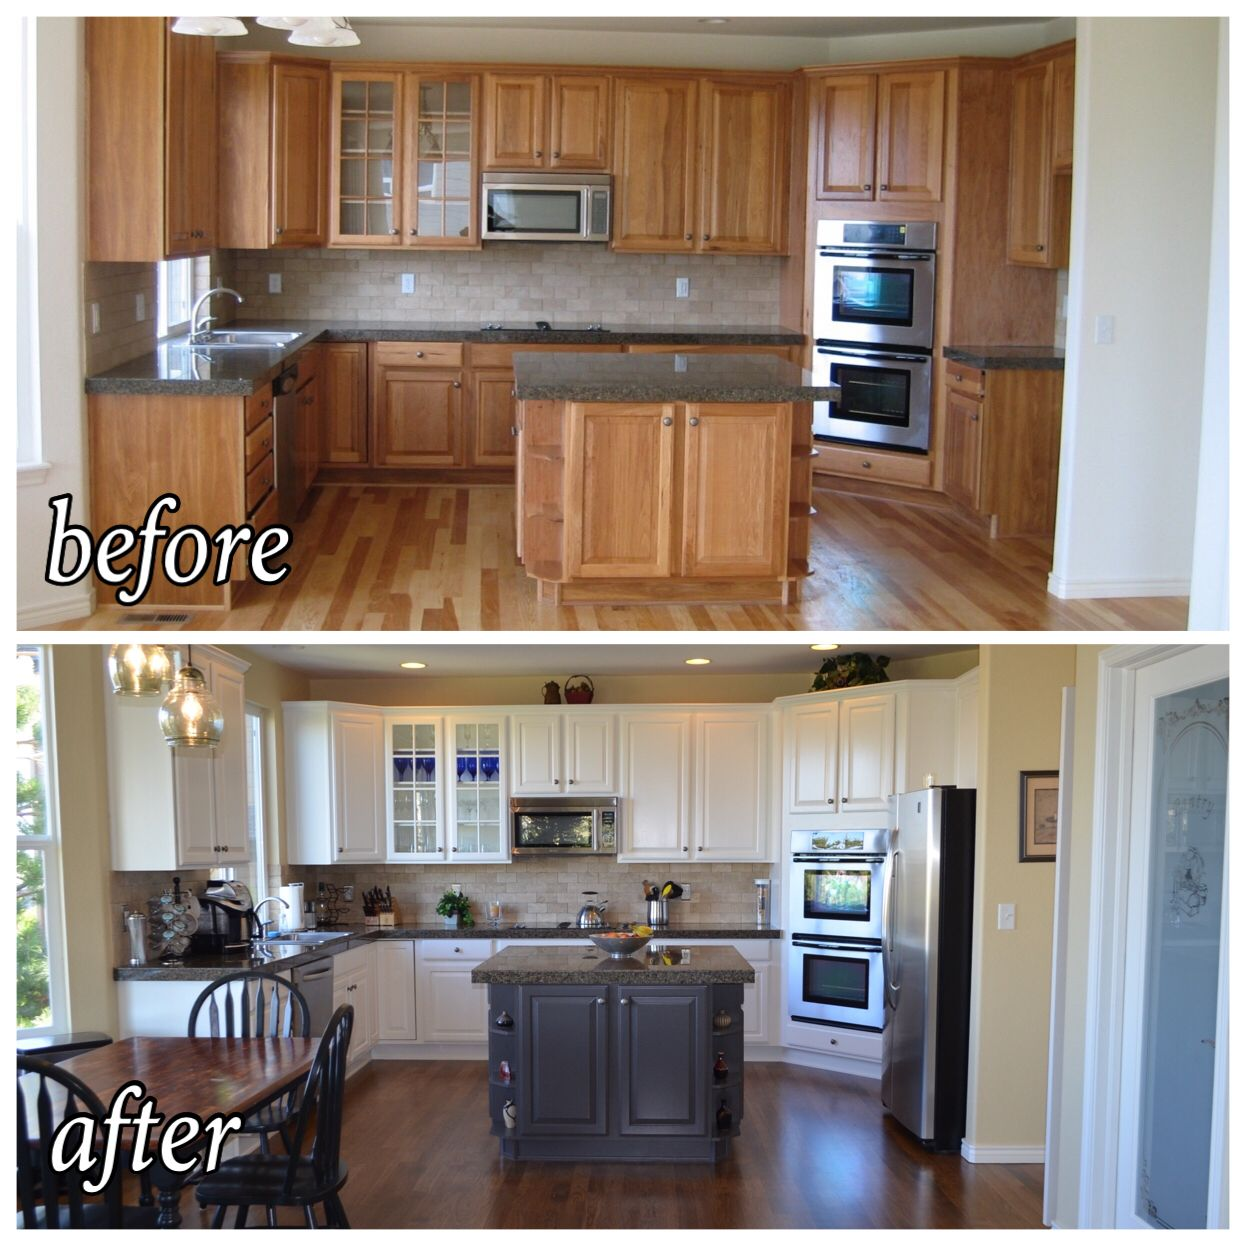 Before After Of Kitchen Update. Painted Cabinets, Darker